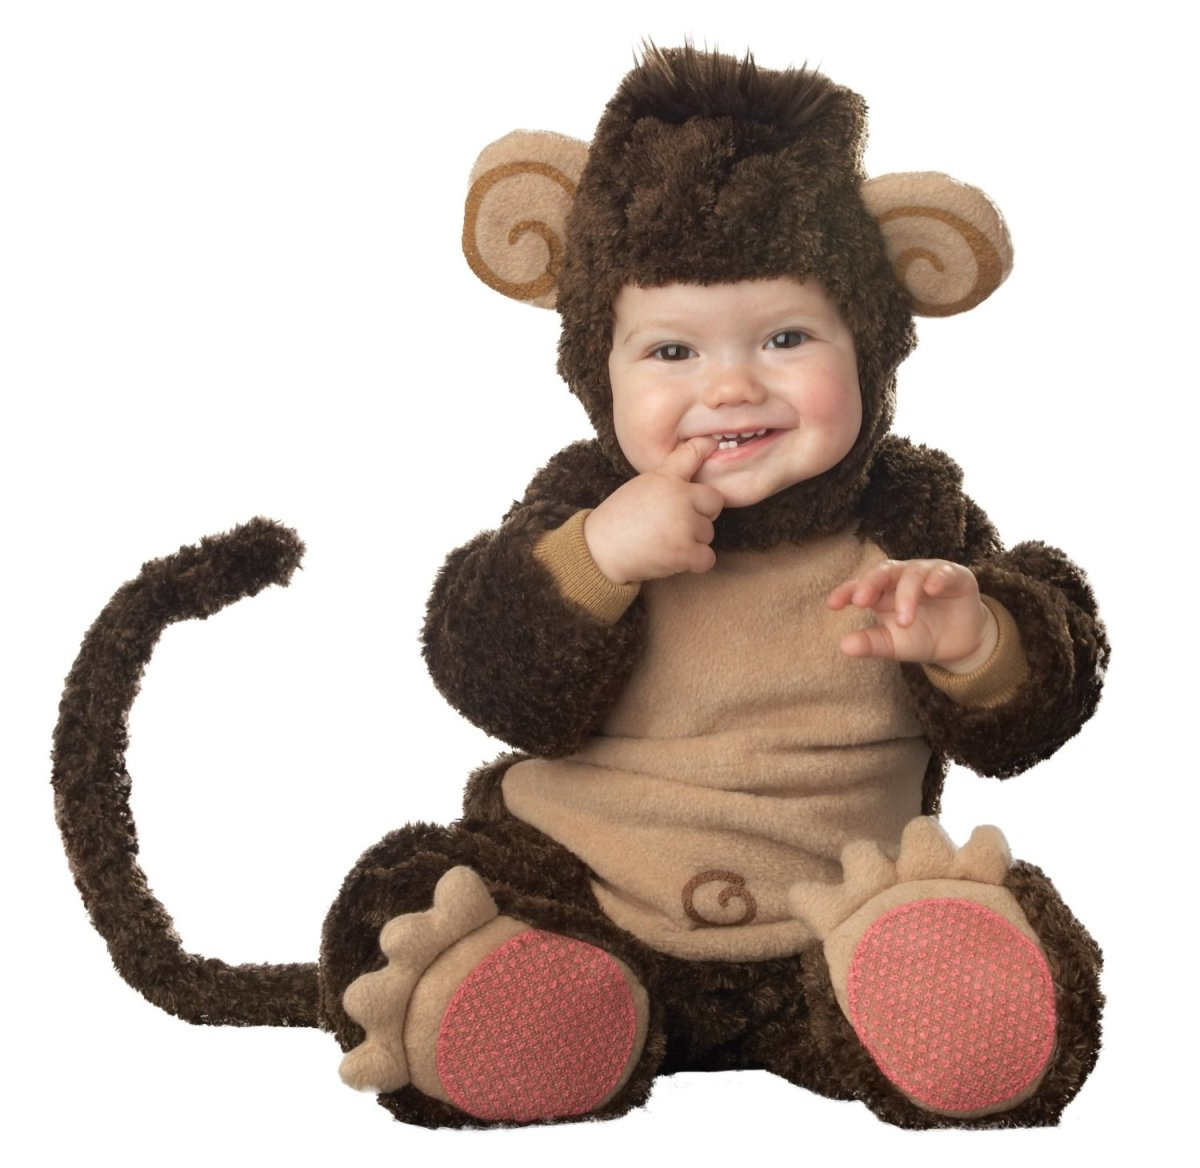 Awwwww.  Look at this cute baby monkey costume!